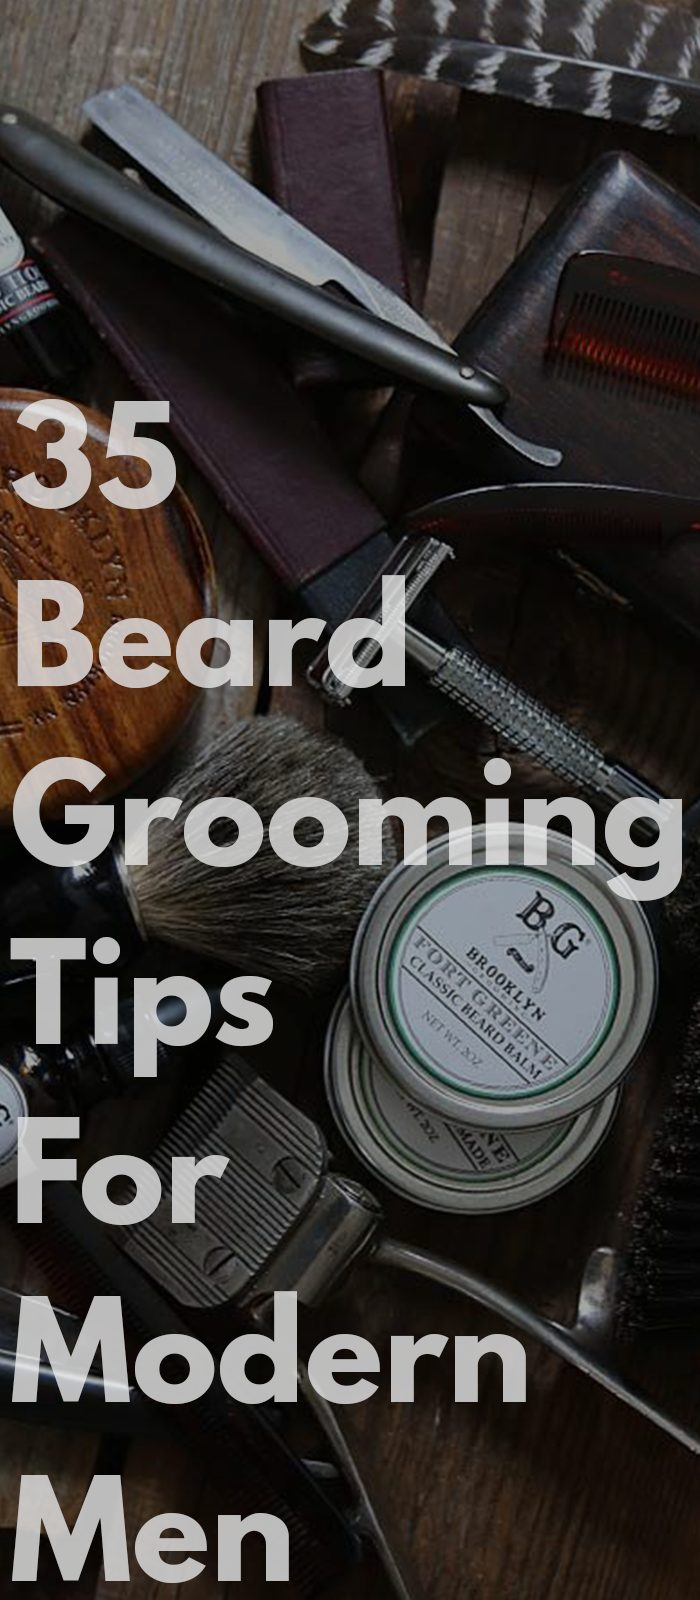 35-Beard-Grooming-Tips-For-Modern-Men